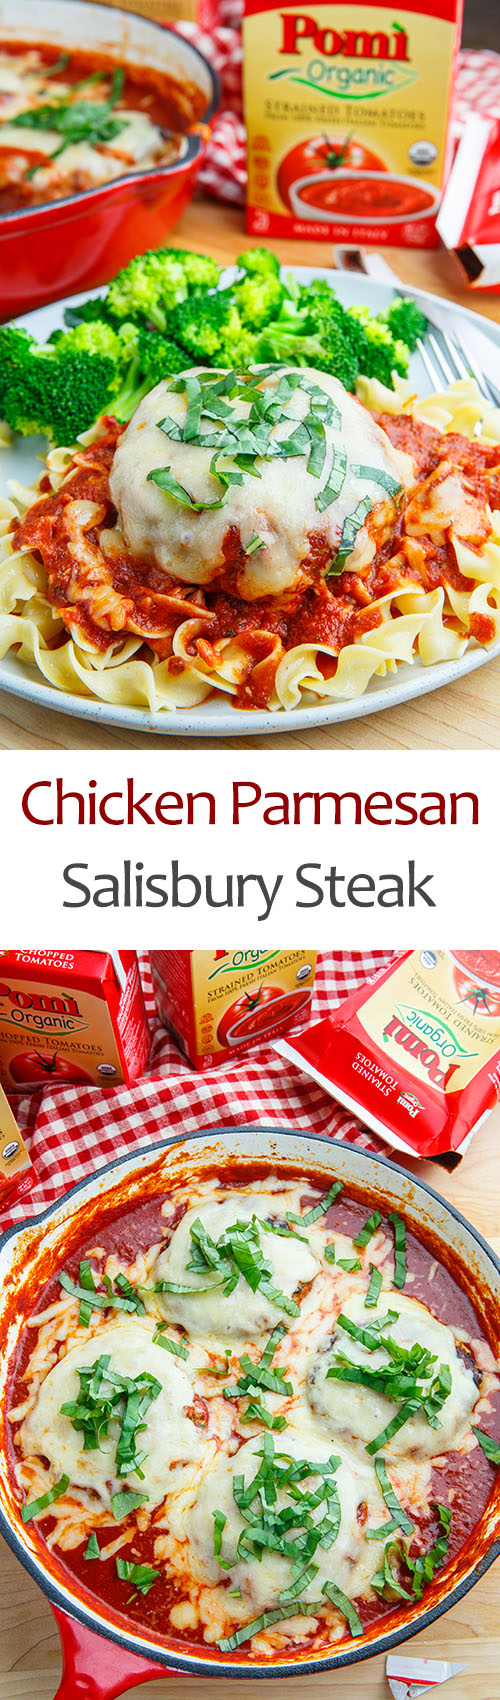 Chicken Parmesan Salisbury Steak